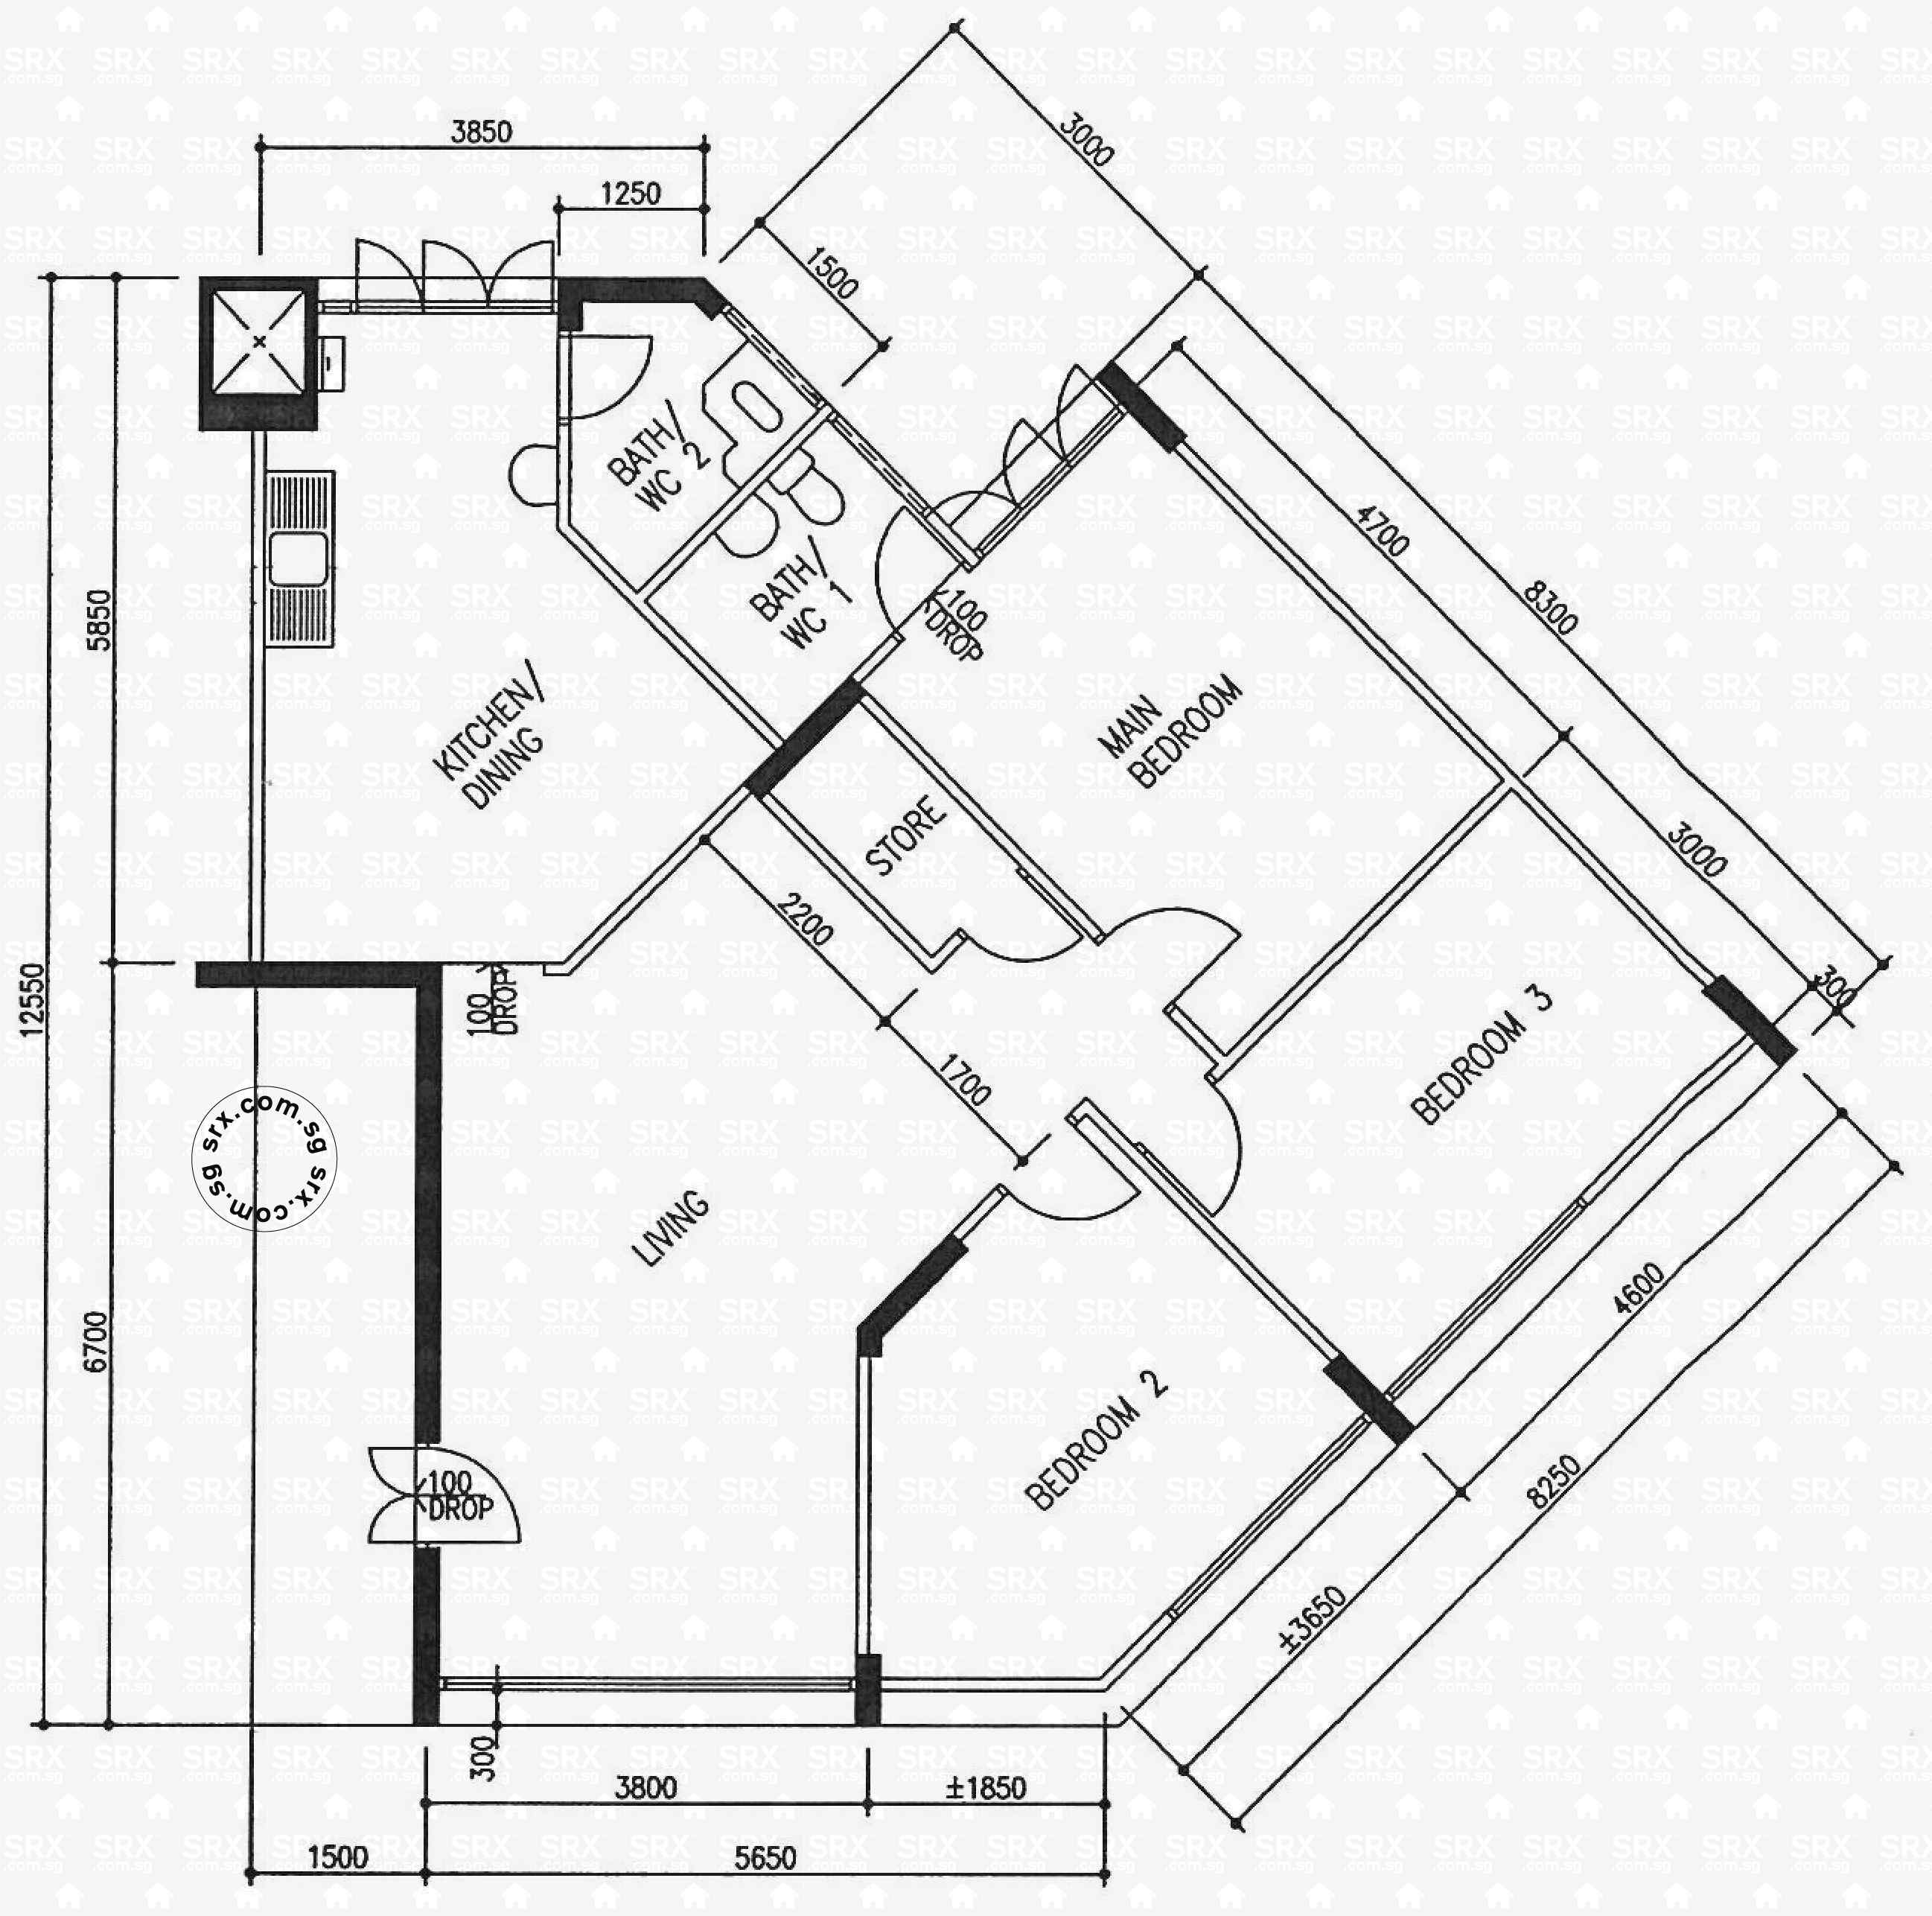 Floor plans for jurong west street 42 hdb details srx for 521 plan